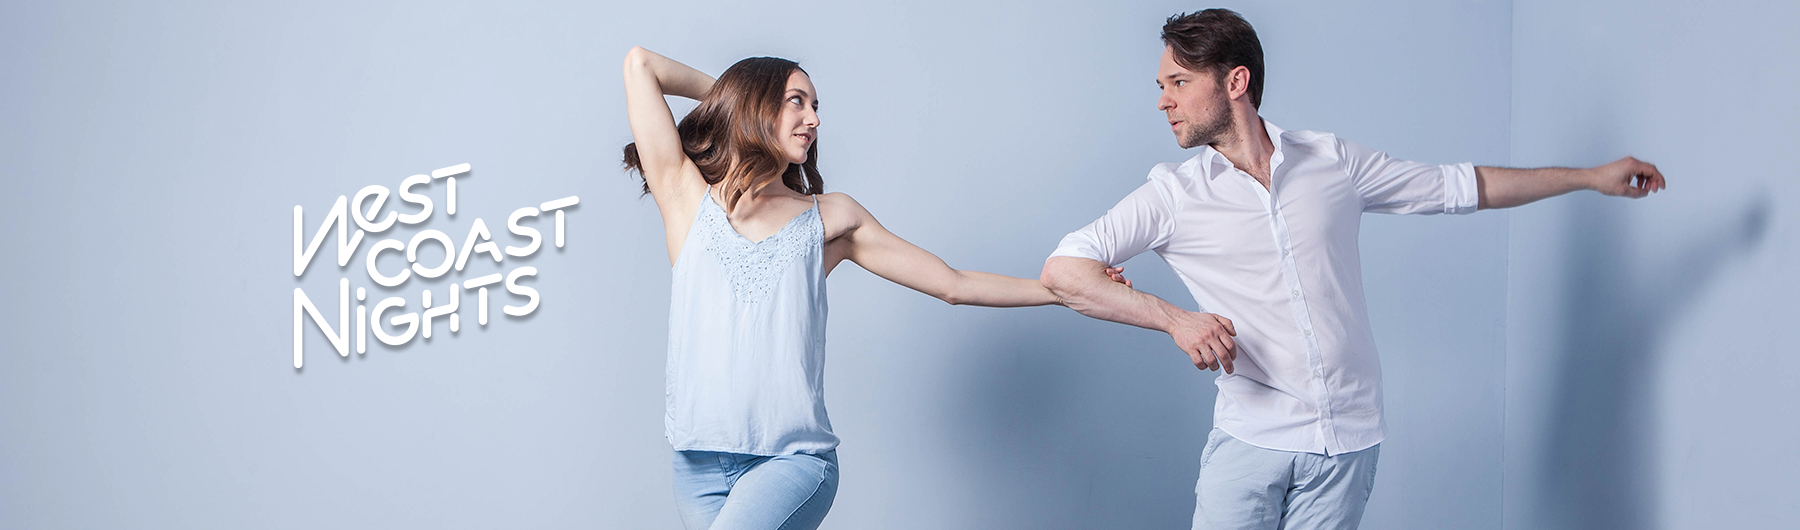 Spring Intensive with Thomas and Verena